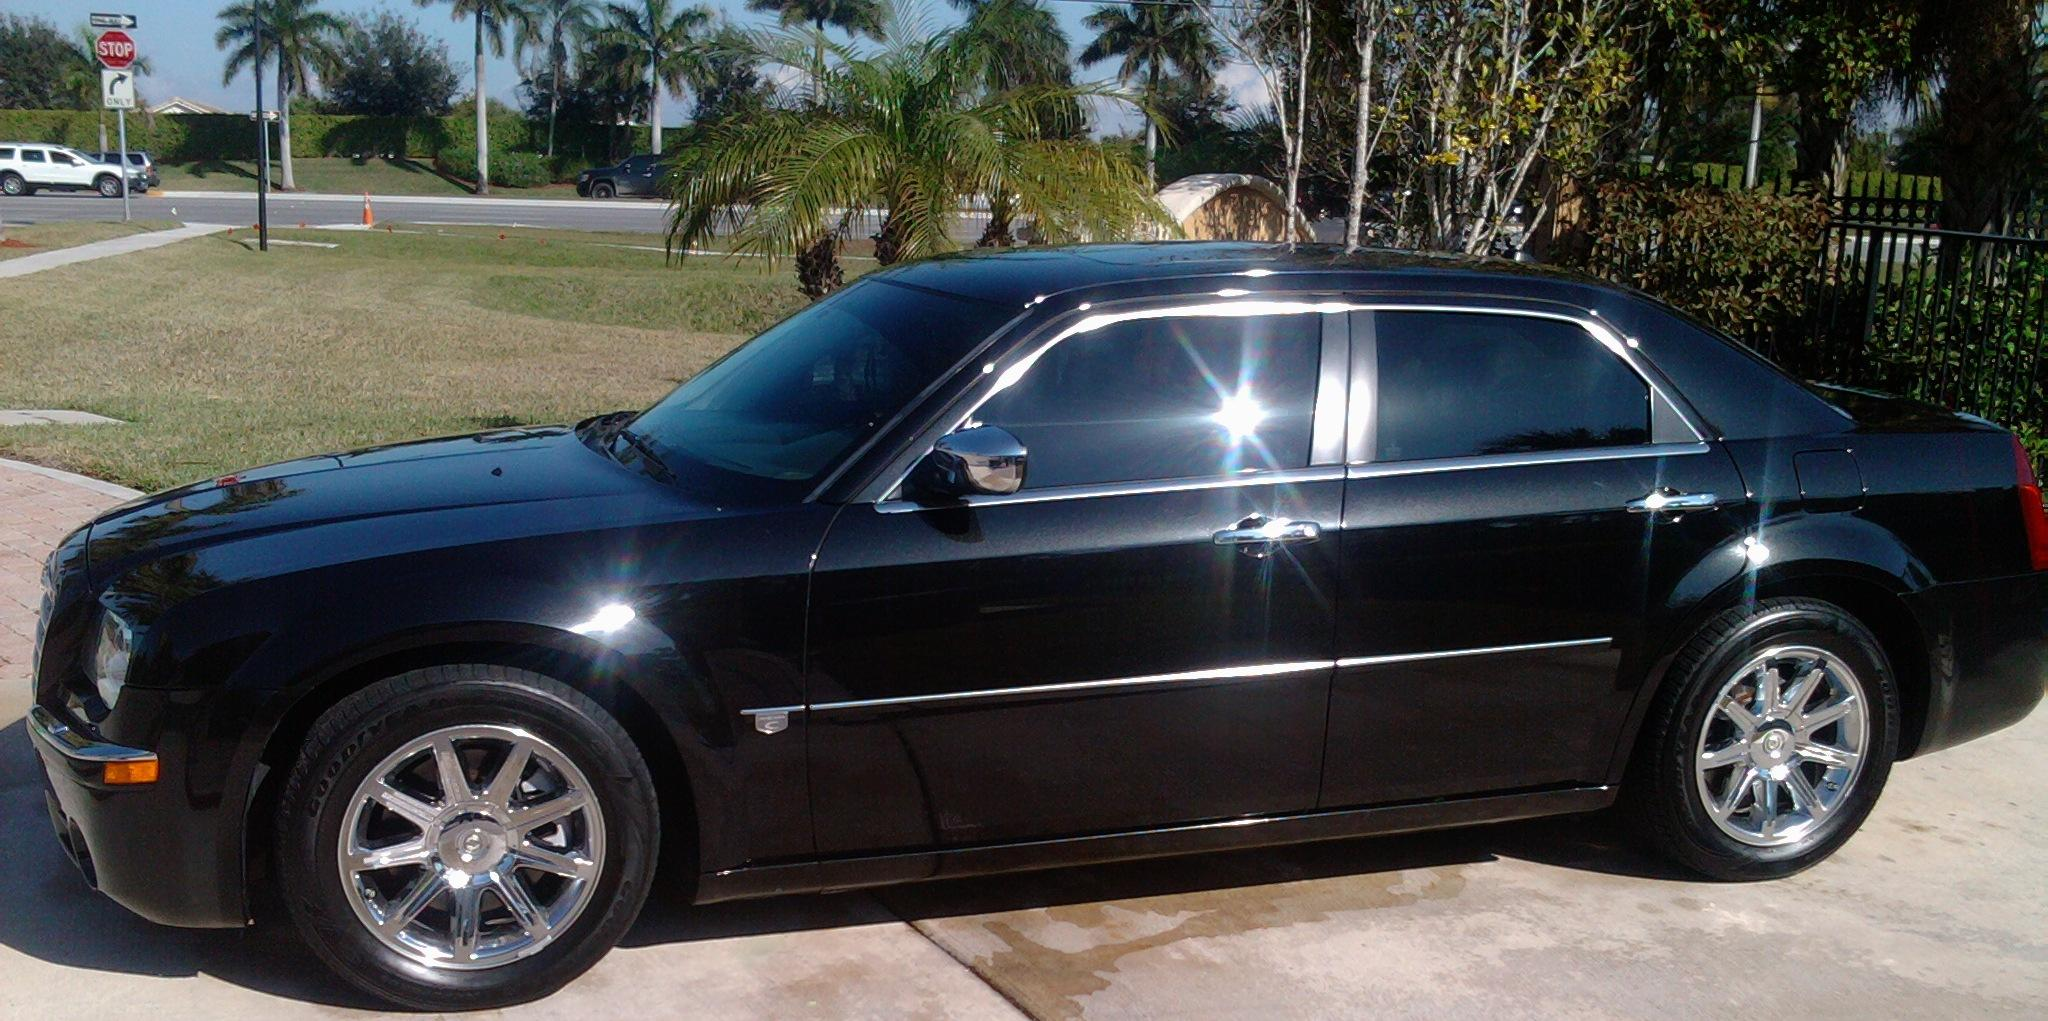 Dutch300c 2007 chrysler 300300c sedan 4d specs photos - 2007 chrysler 300 custom interior ...